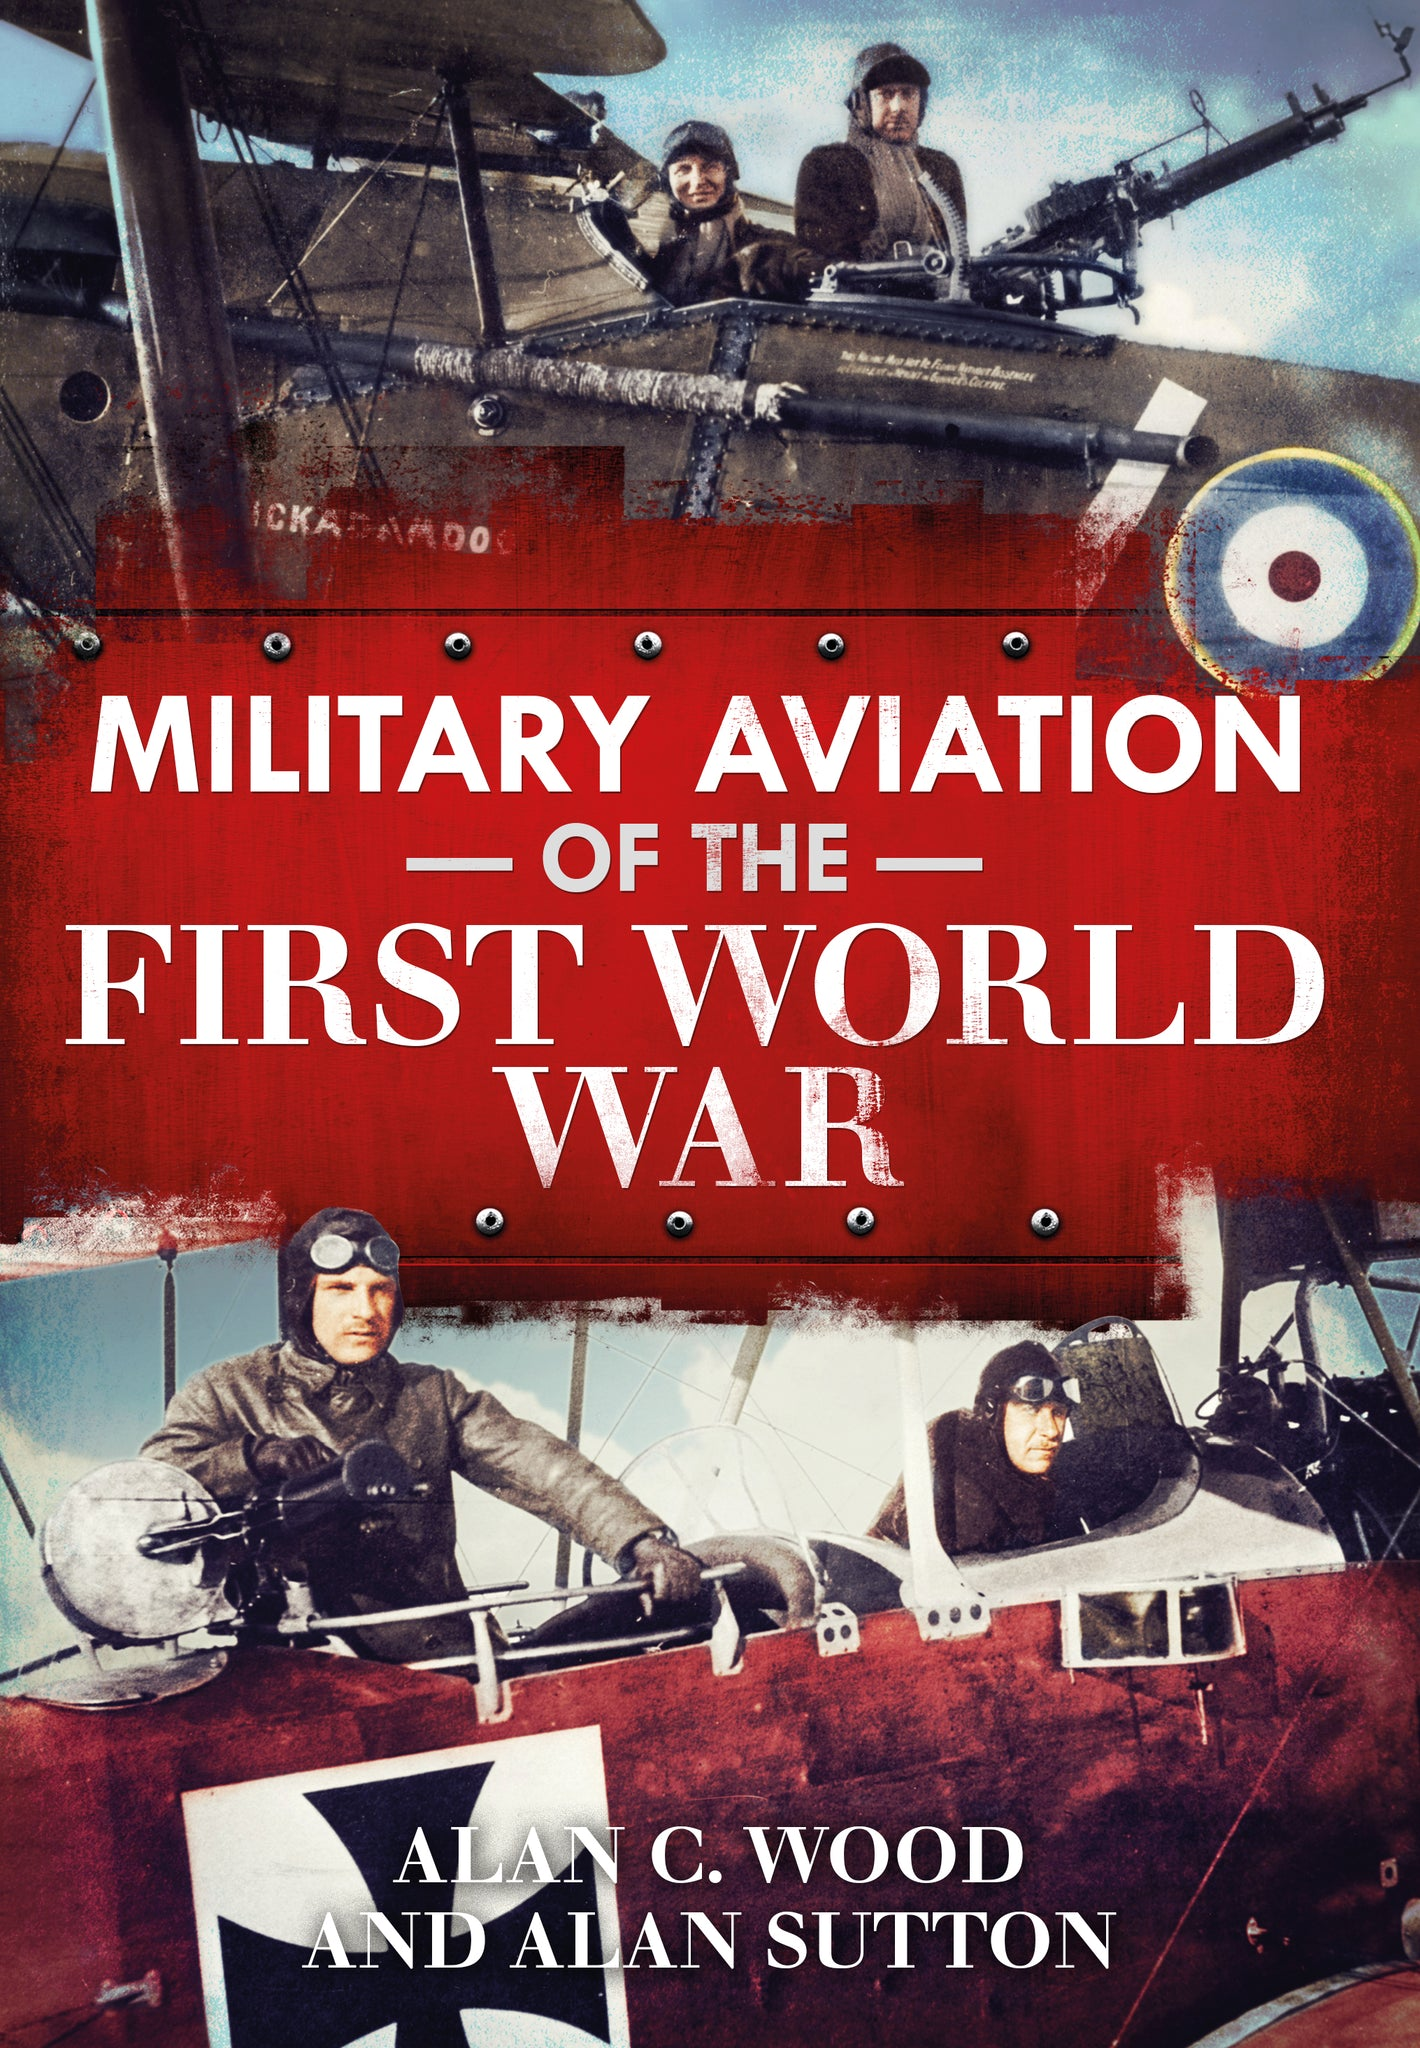 Military Aviation of the First World War (paperback edition)